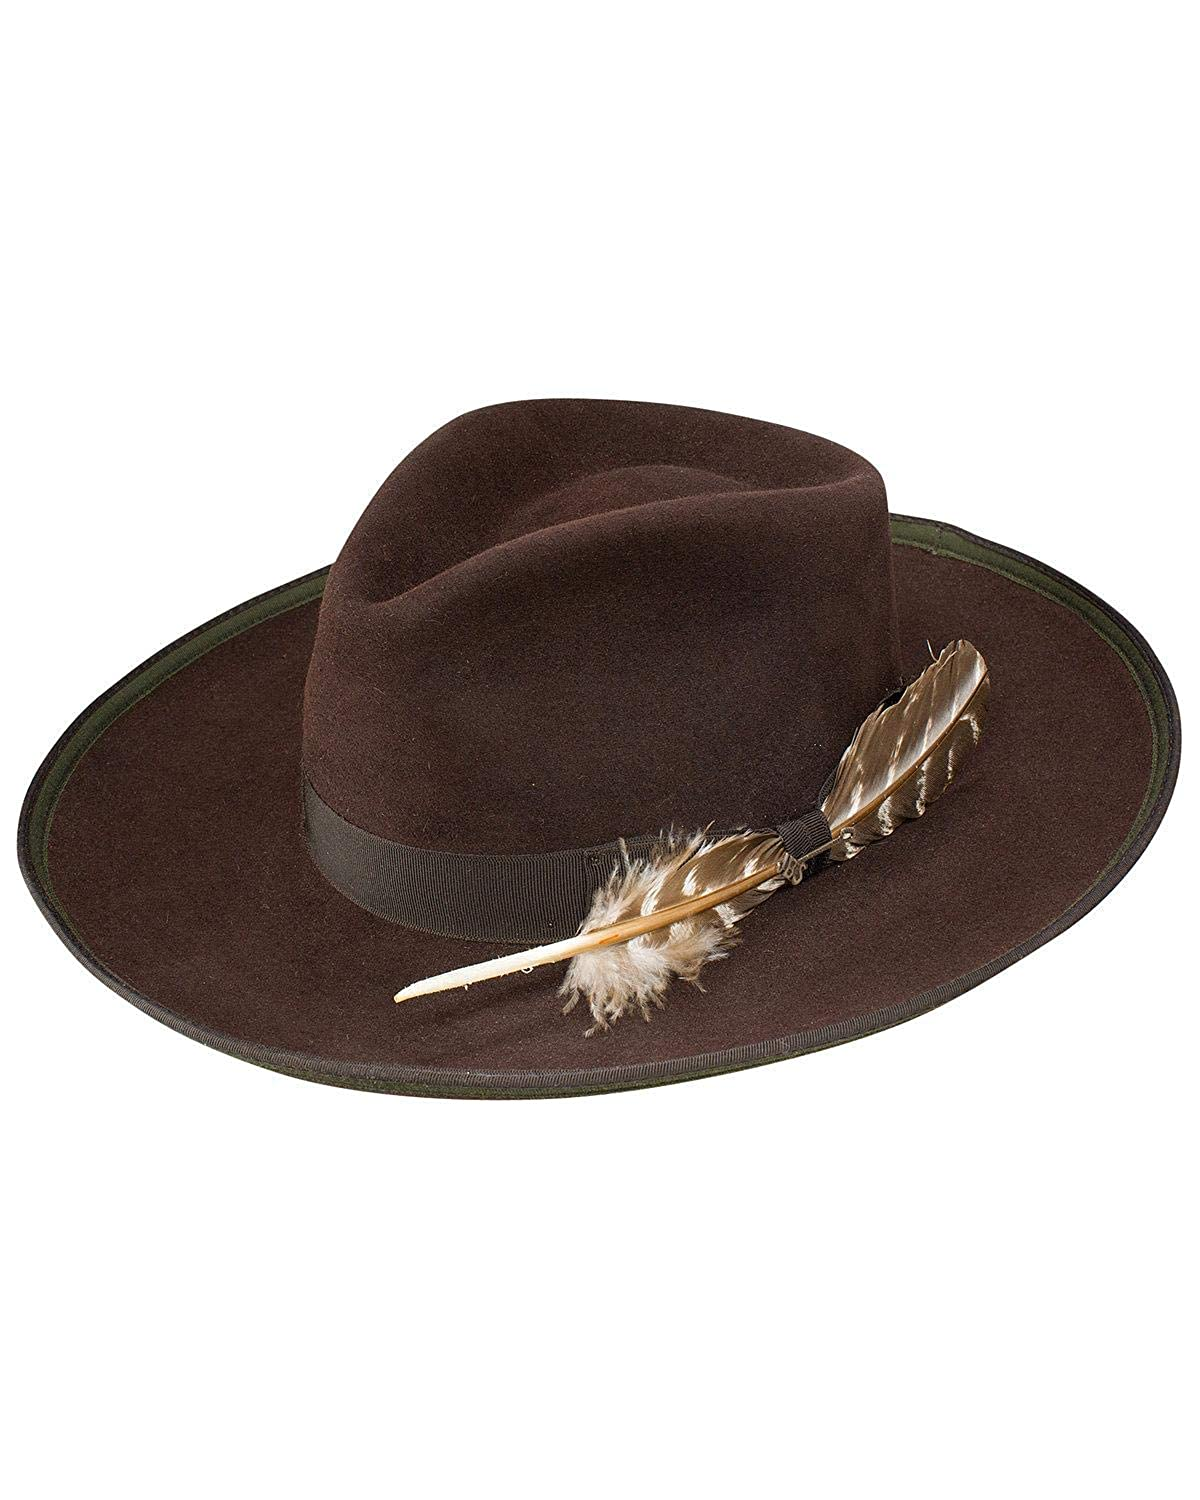 Stetson Mens Renegade Royal Deluxe Felt Hat Chocolate 7 5//8